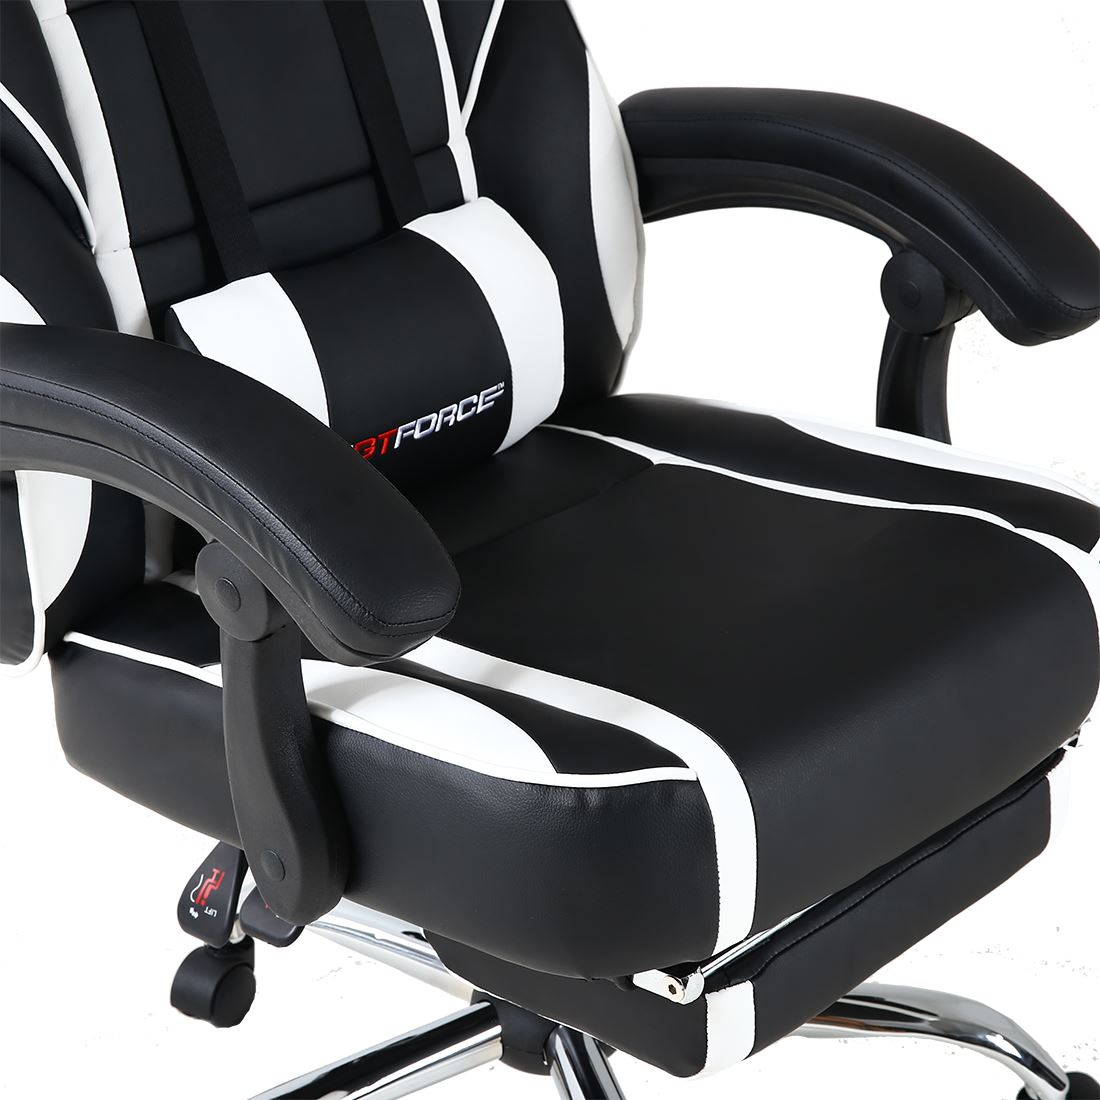 GTFORCE-PACE-RECLINING-LEATHER-SPORTS-RACING-OFFICE-DESK-CHAIR-GAMING-FOOTSTOOL